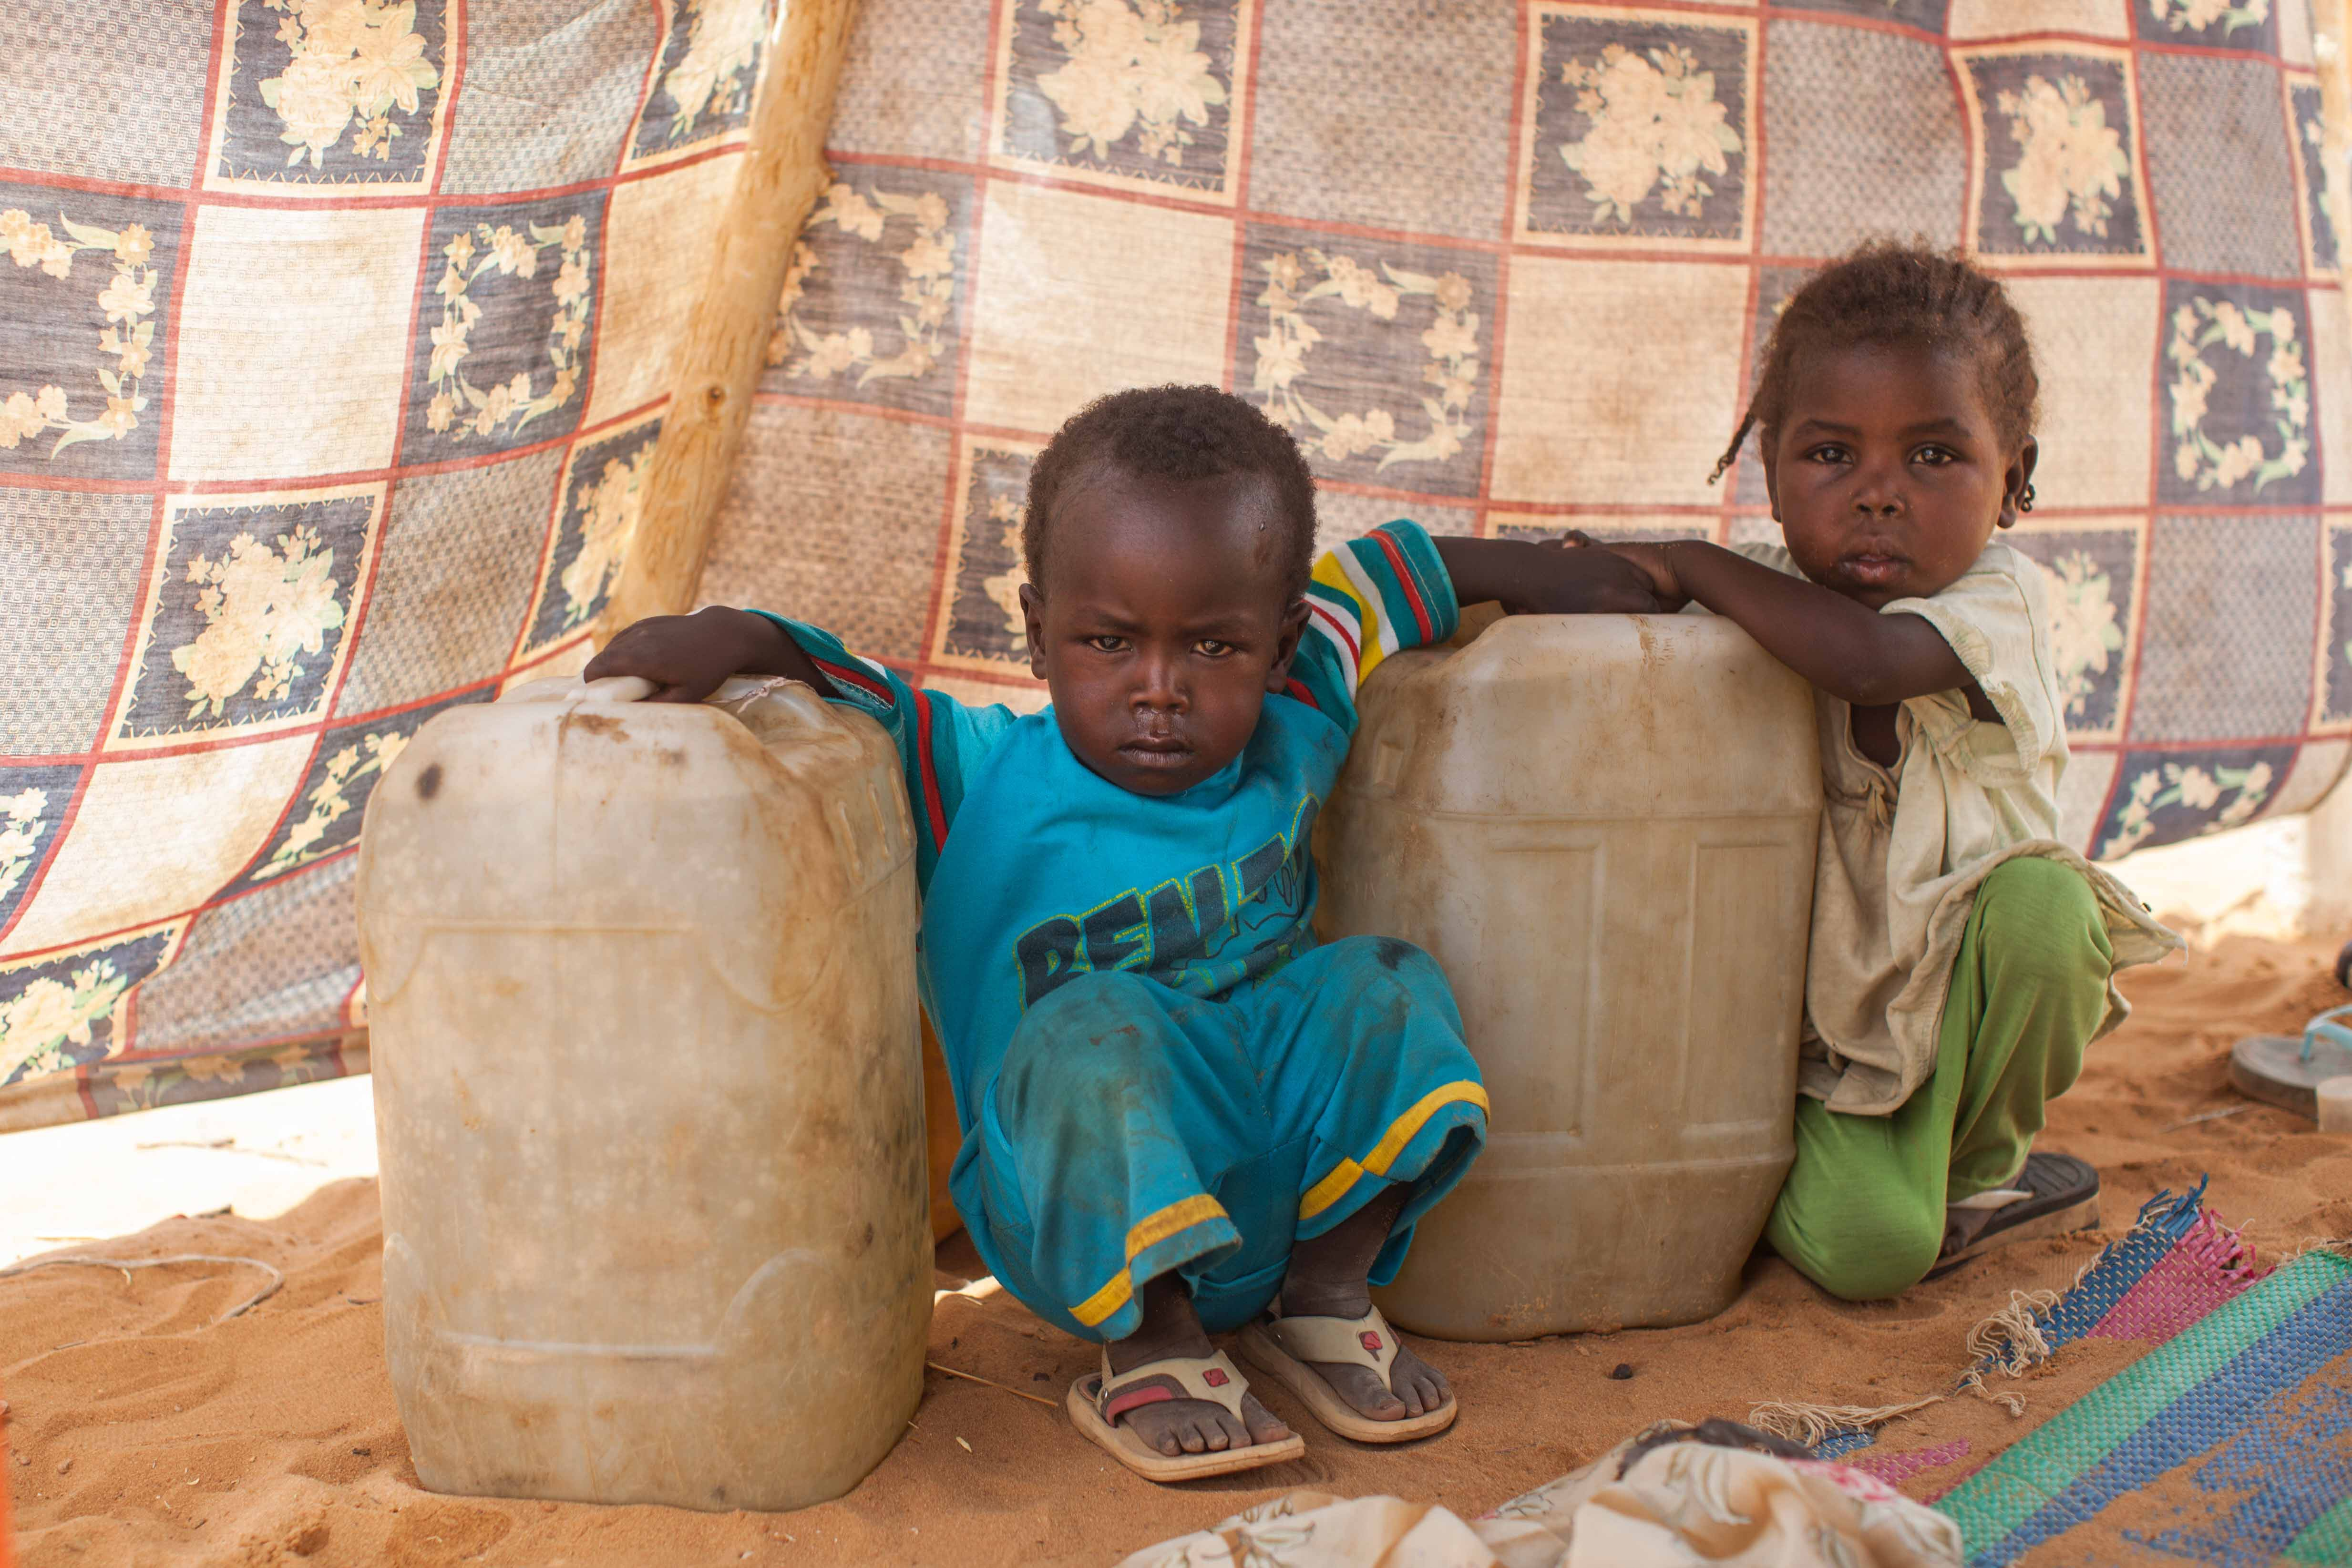 A handout picture released by the United Nations-African Union Mission in Darfur (UNAMID) on June 11, 2014 shows a two children photographed next to water jerry cans inside their shelter in a new settlement in Zam Zam camp for Internally Displaced People (IDP), North Darfur. Thousands of people, mostly women, children and the elderly, have sought refuge in the Zam Zam IDP camp,  following an armed militia attack on their villages more than three months ago. Many of the recently displaced hail from different villages around Tawila, Korma and Tina in North Darfur as well as Khor Abeche in South Darfur. The displaced community continues to request for basic services such as water, food, healthcare services and shelter.   (AFP PHOTO/UNAMID/ALBERT GONZALEZ FARRAN )